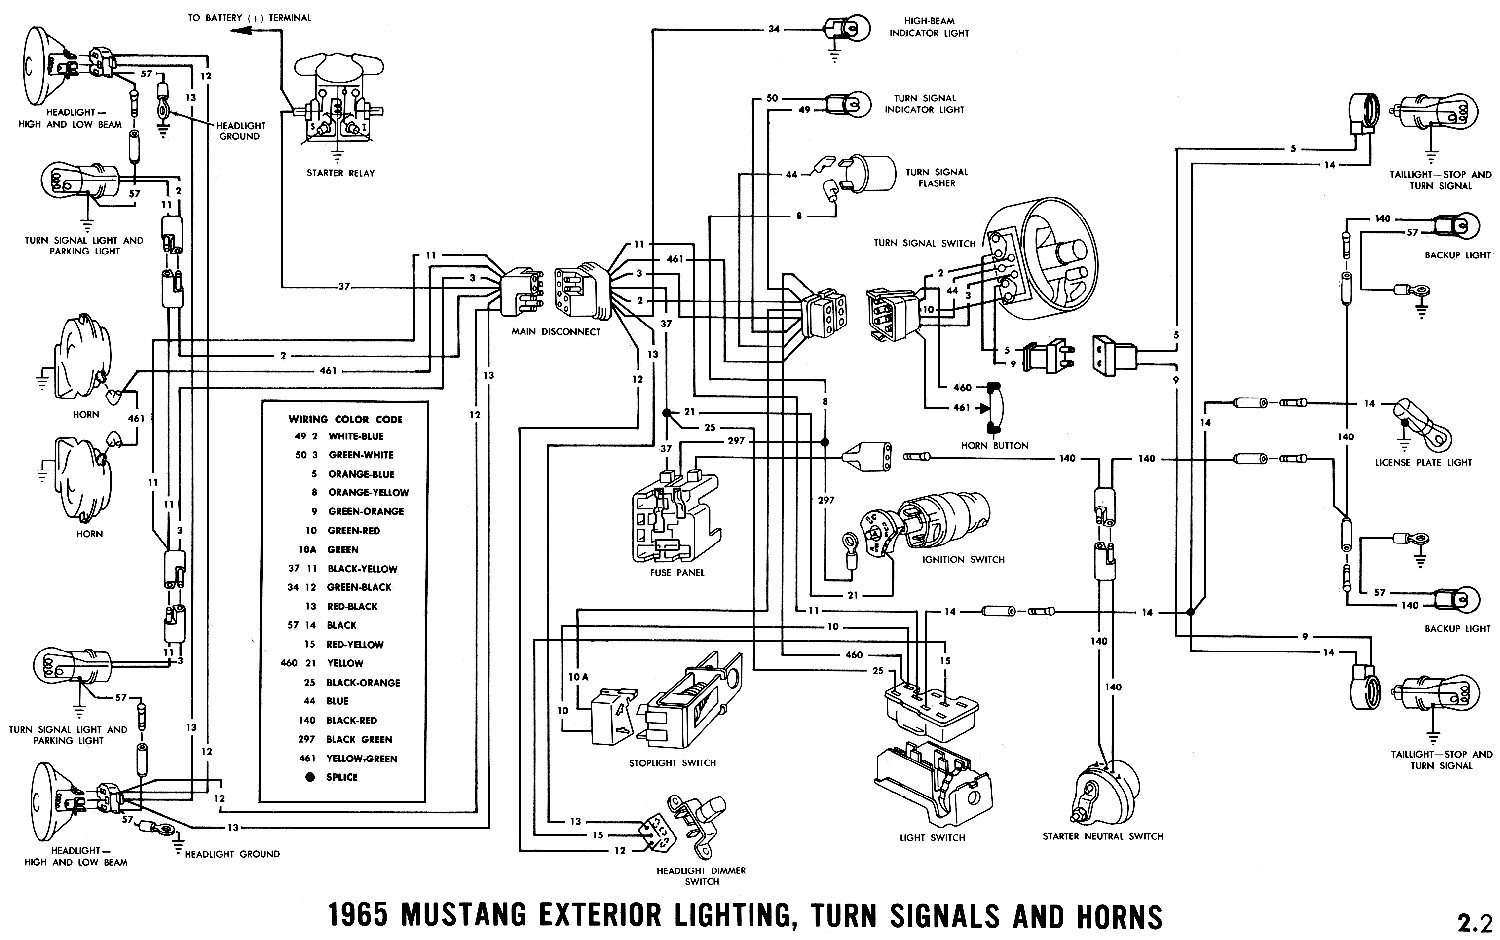 Headlight Wiring Harness Diagram Archive Of Automotive Jeep Wrangler 65 Mustang Electrical Diagrams Schematics Rh Glenifferagility Co Uk